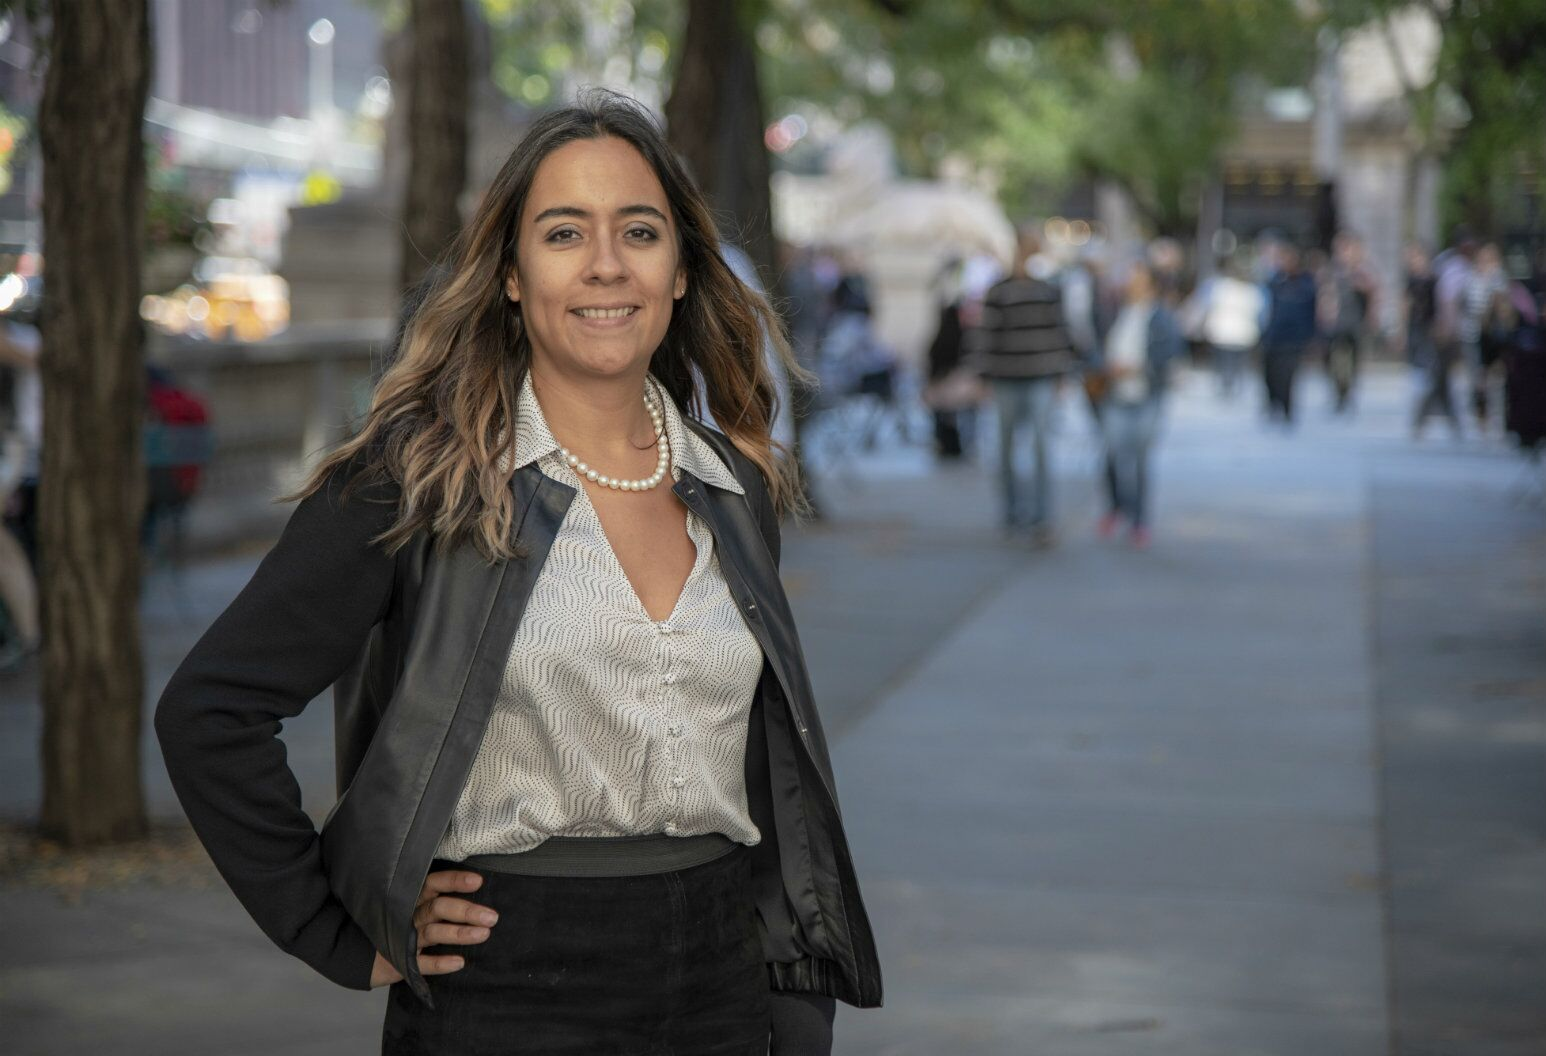 Liliana Uruburo poses on a city sidewalk in professional attire. Ms. Uruburo feels confident in her health because of the BRCA Center's specialists.